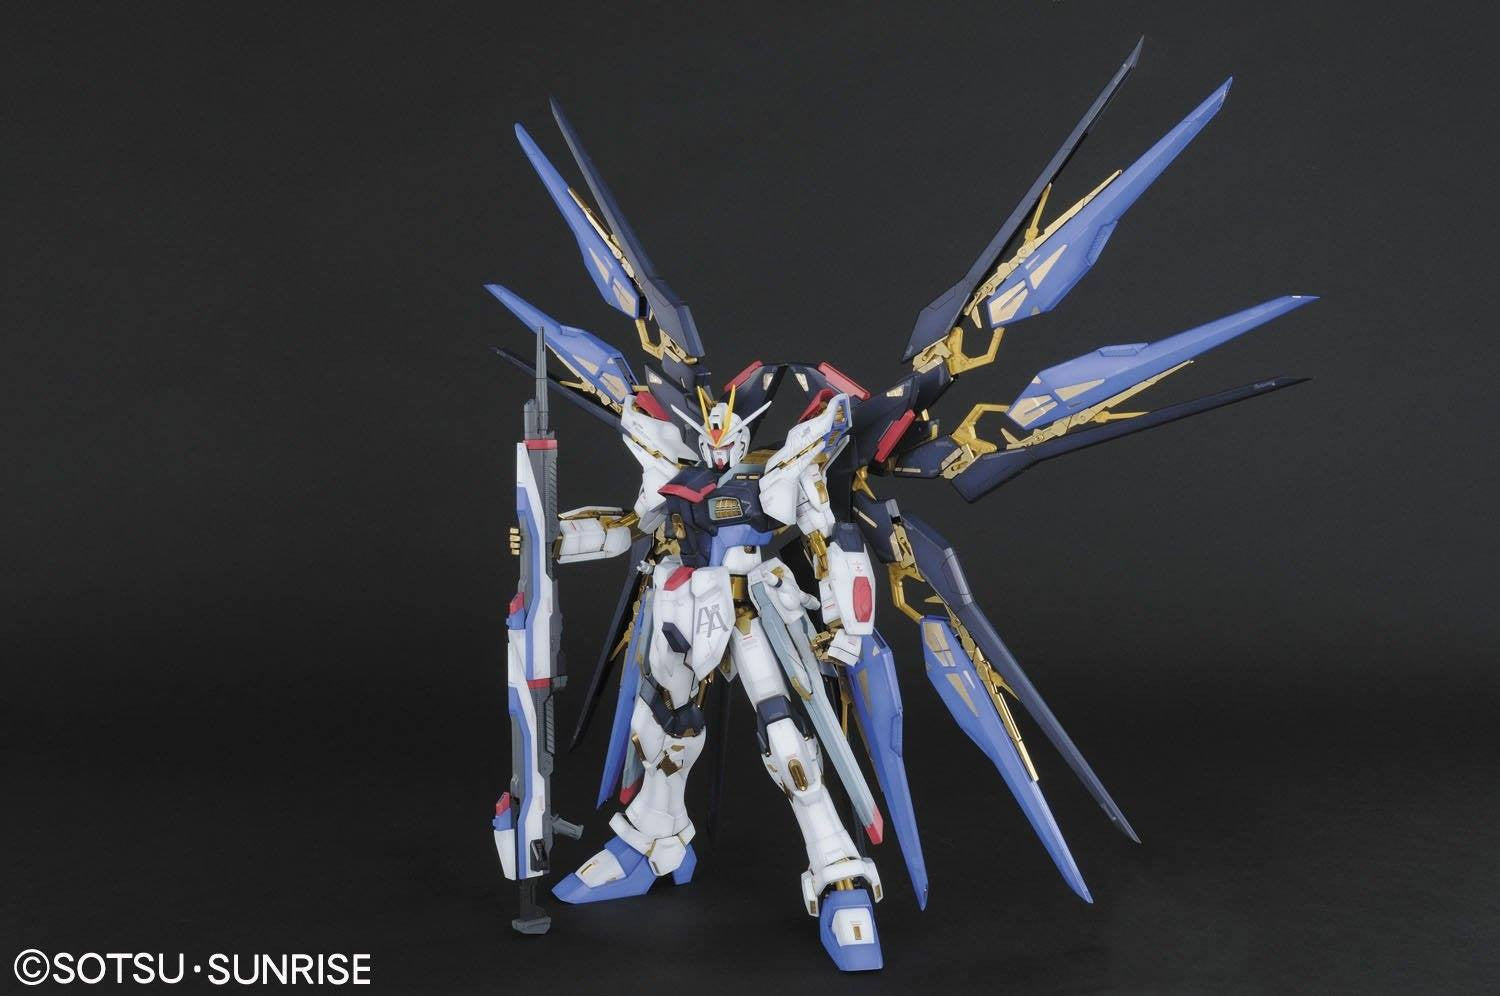 Bandai - Mobile Suit Gundam Seed Destiny 1/60 PG - Strike Freedom Gundam Model Kit